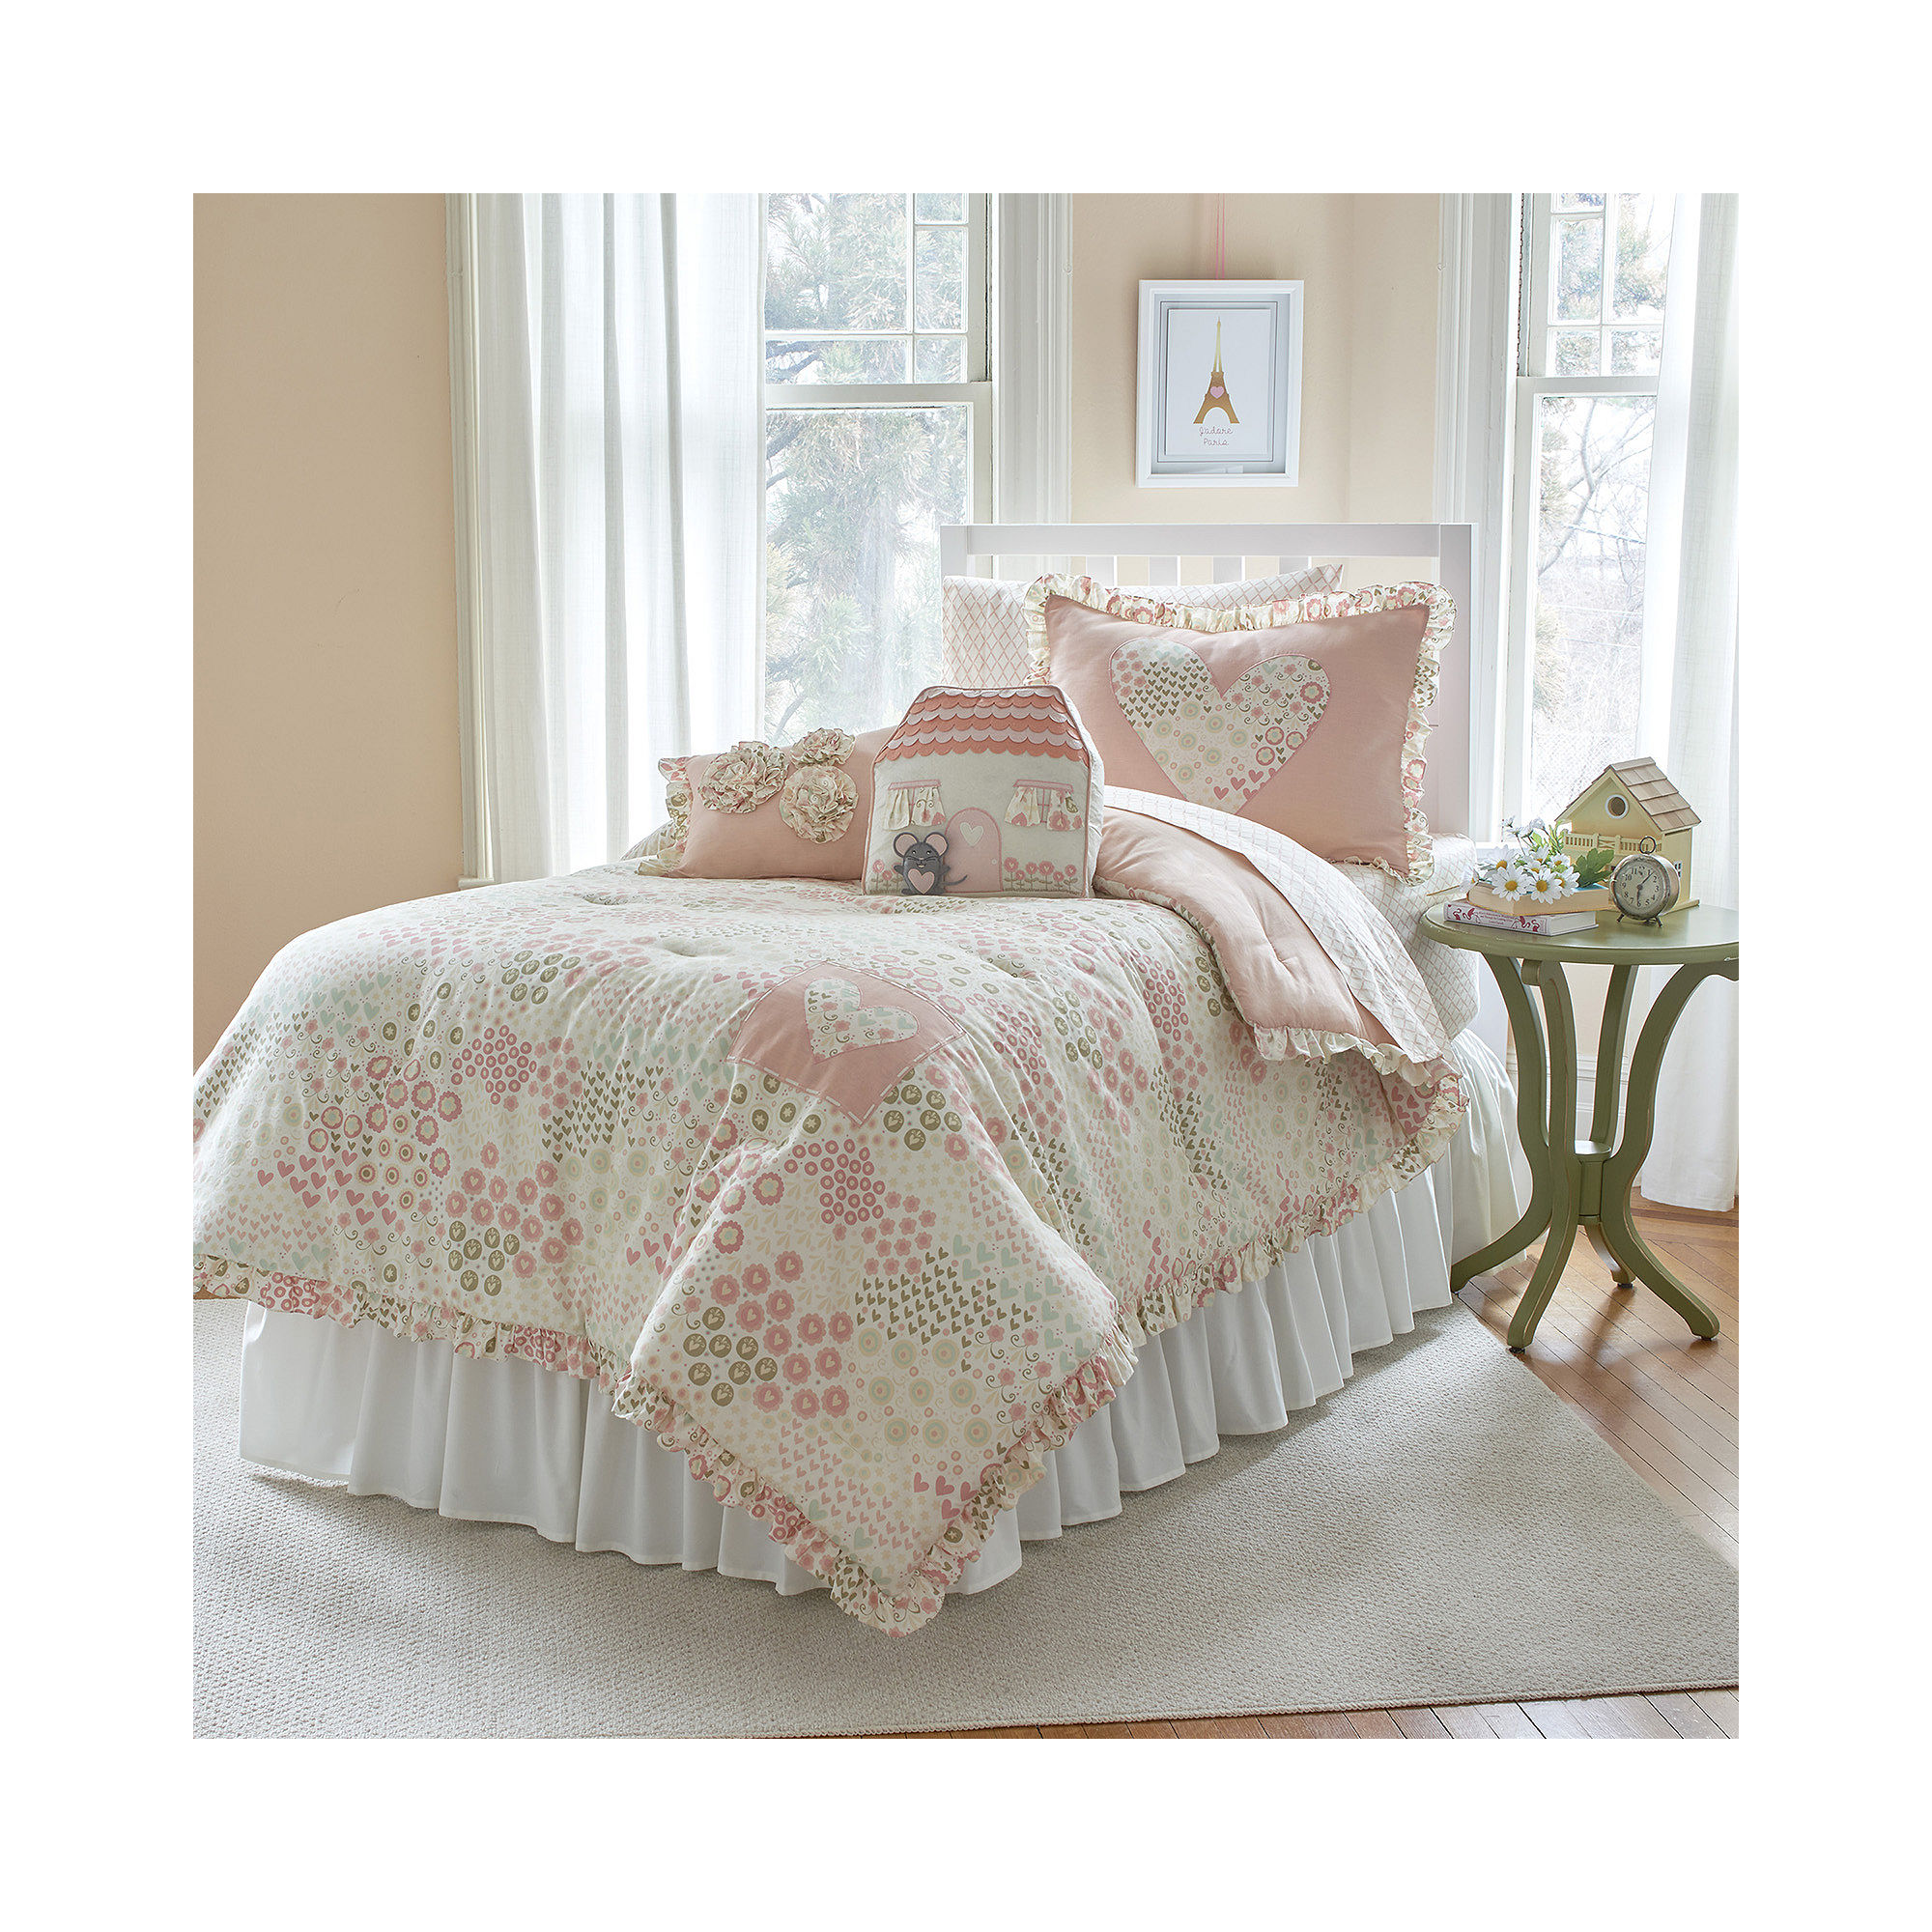 improve crib butterfly lane damask ddler yellow floral pink purple stupendous blush gray to turquoise bedding king grey chevron lavender full caden cot sets mint elephant dark ter set and a ways baby of green bedspread owl size comforter